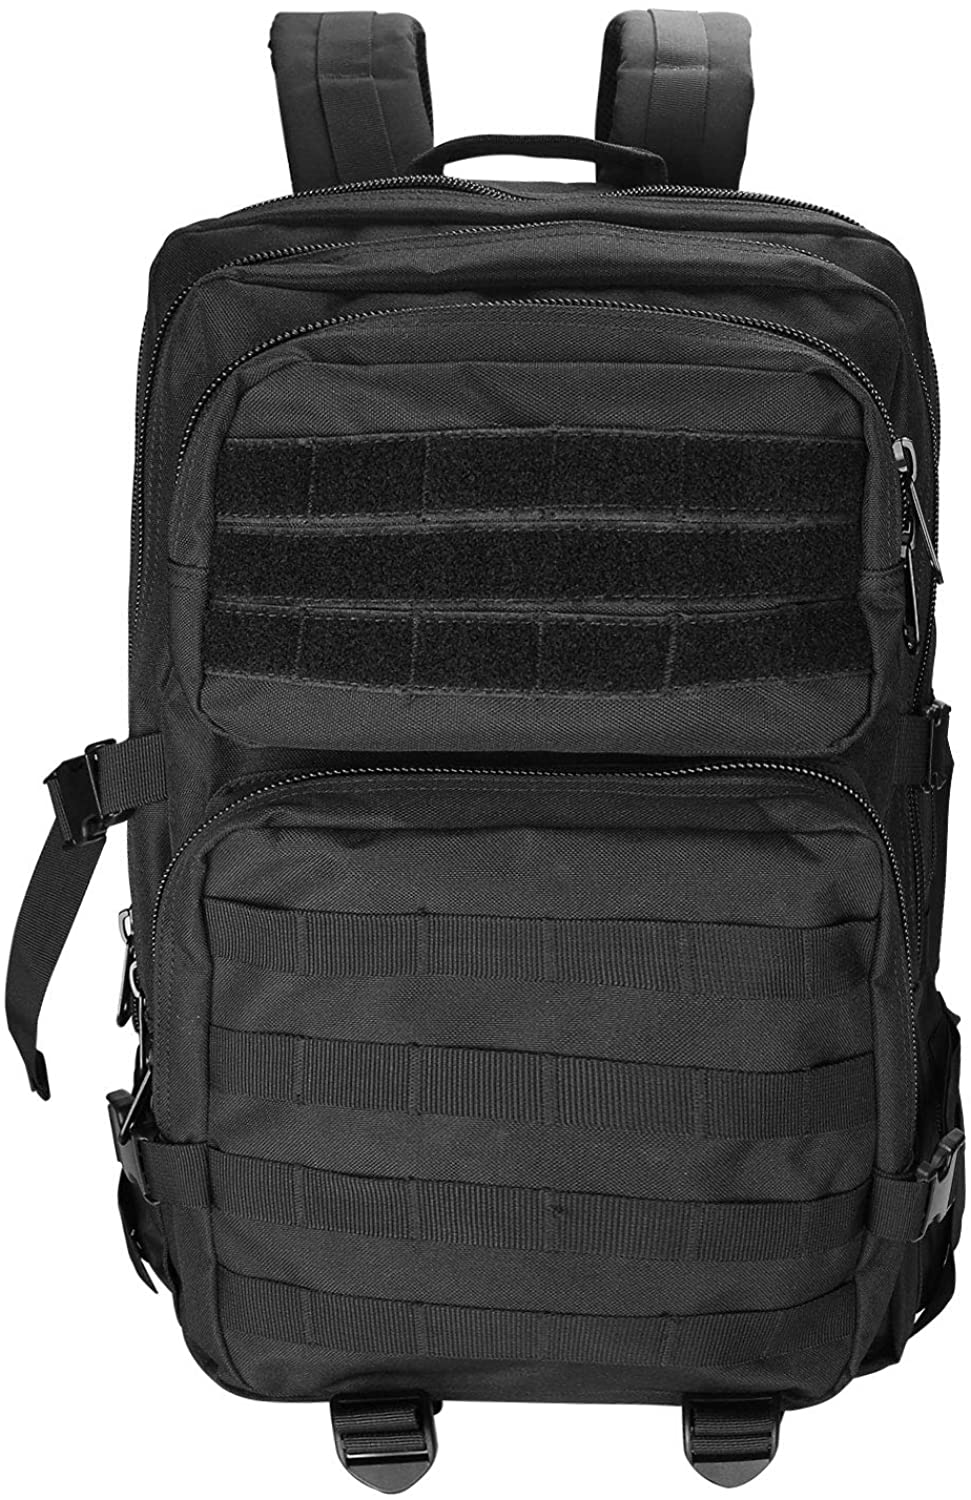 Polaland Tactical Backpack Bag 40L Large 3 Day Military Army Outdoor Assault Pack Rucksacks Carry Bag Backpacks